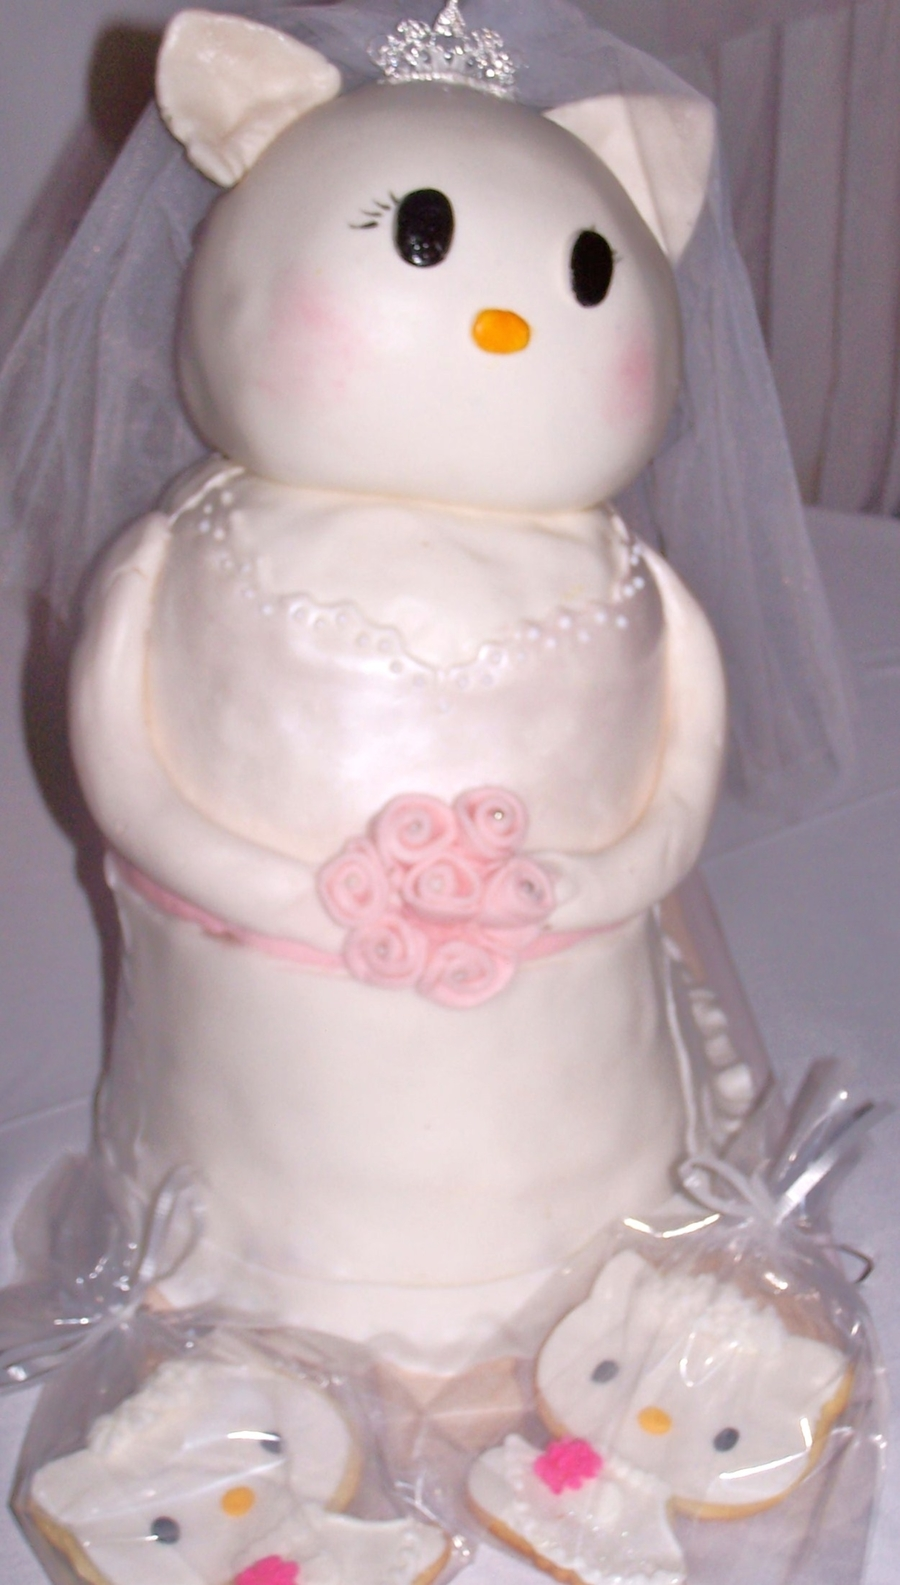 6cfe578fd6c3 A grown-up version of Hello Kitty for a bridal shower. Chocolate cake with  Chocolate Hazelnut Buttercream filling and White Chocolate Cake with  Raspberry ...